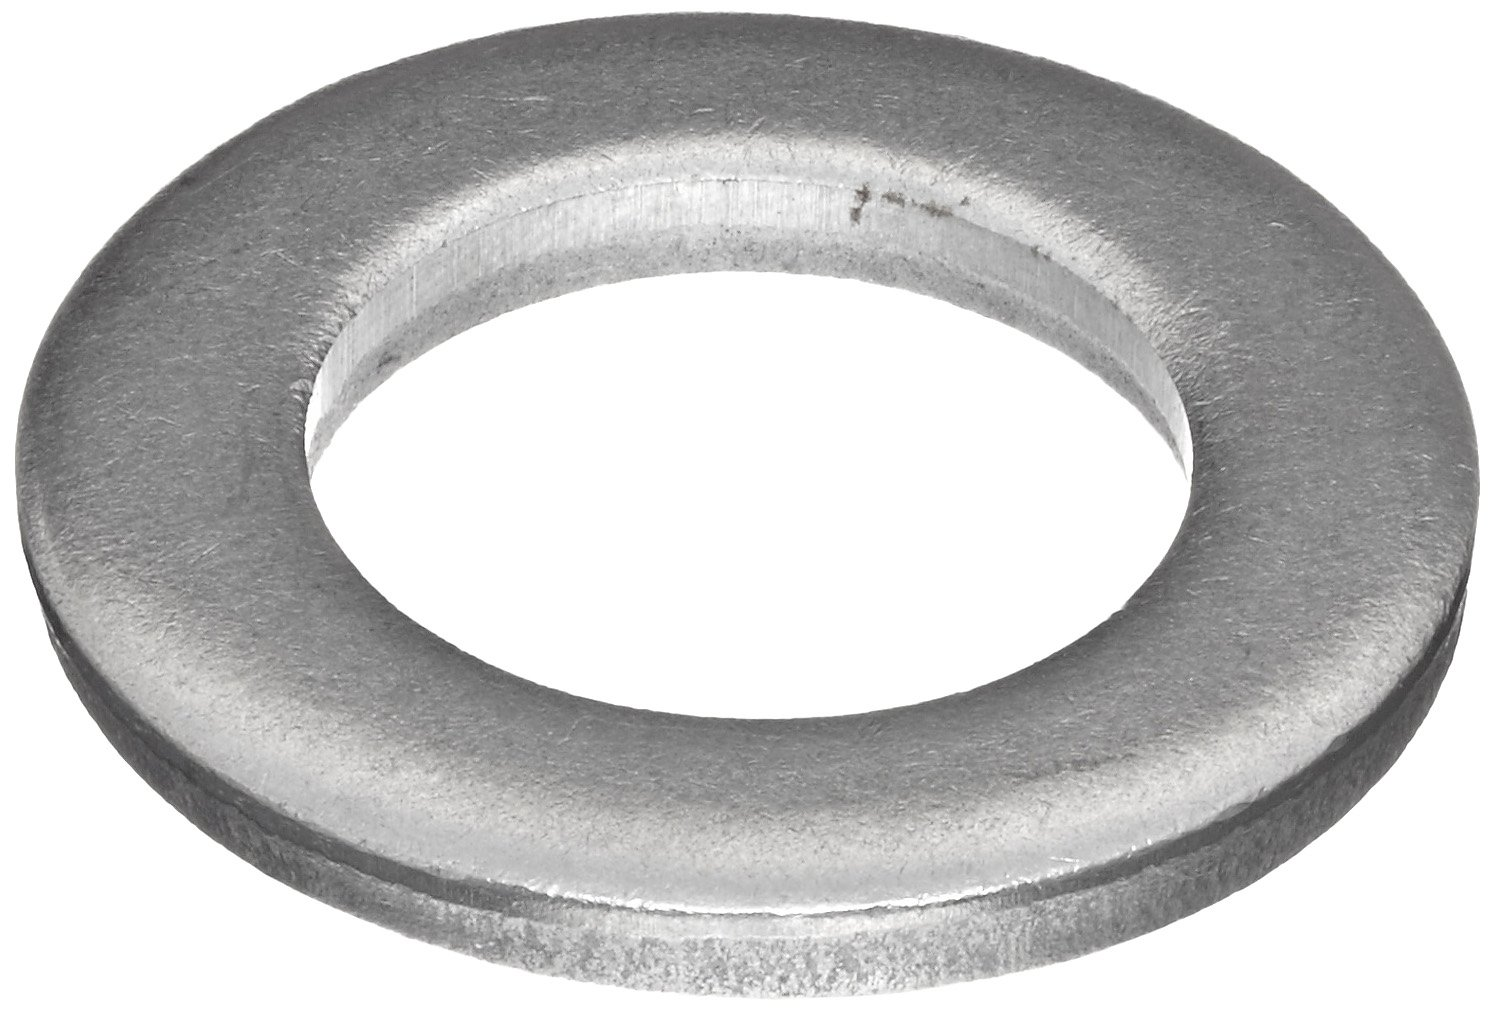 0.048 Thickness 1 ID 1-1//2 OD ASTM A1008//ASTM A1011 Pack of 25 C1006//C1020 Steel Round Shim Mill #1-5 Temper Finish Unpolished